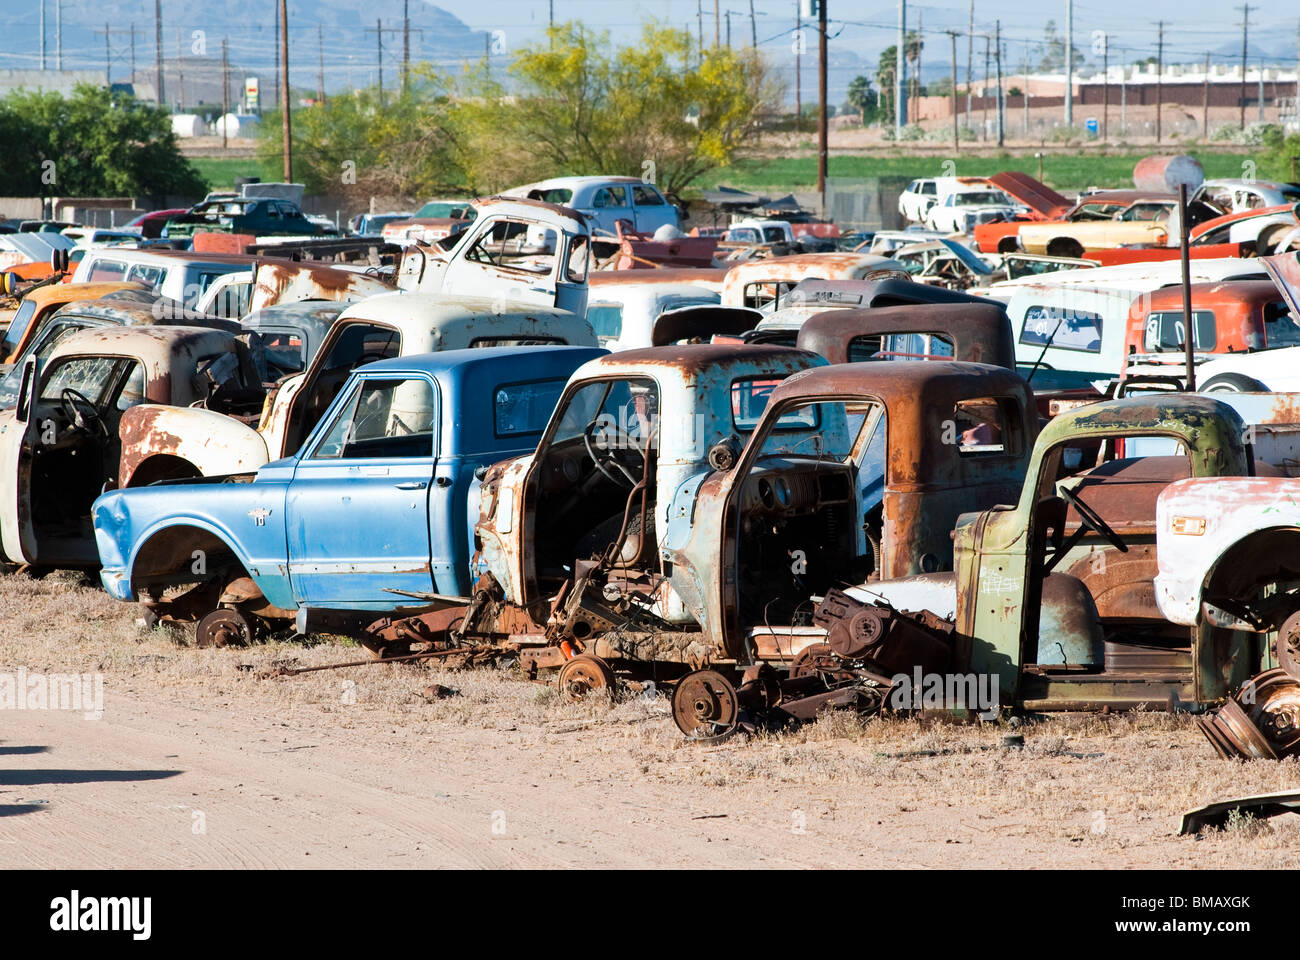 Auto Parts For Scrap Stock Photos & Auto Parts For Scrap Stock ...